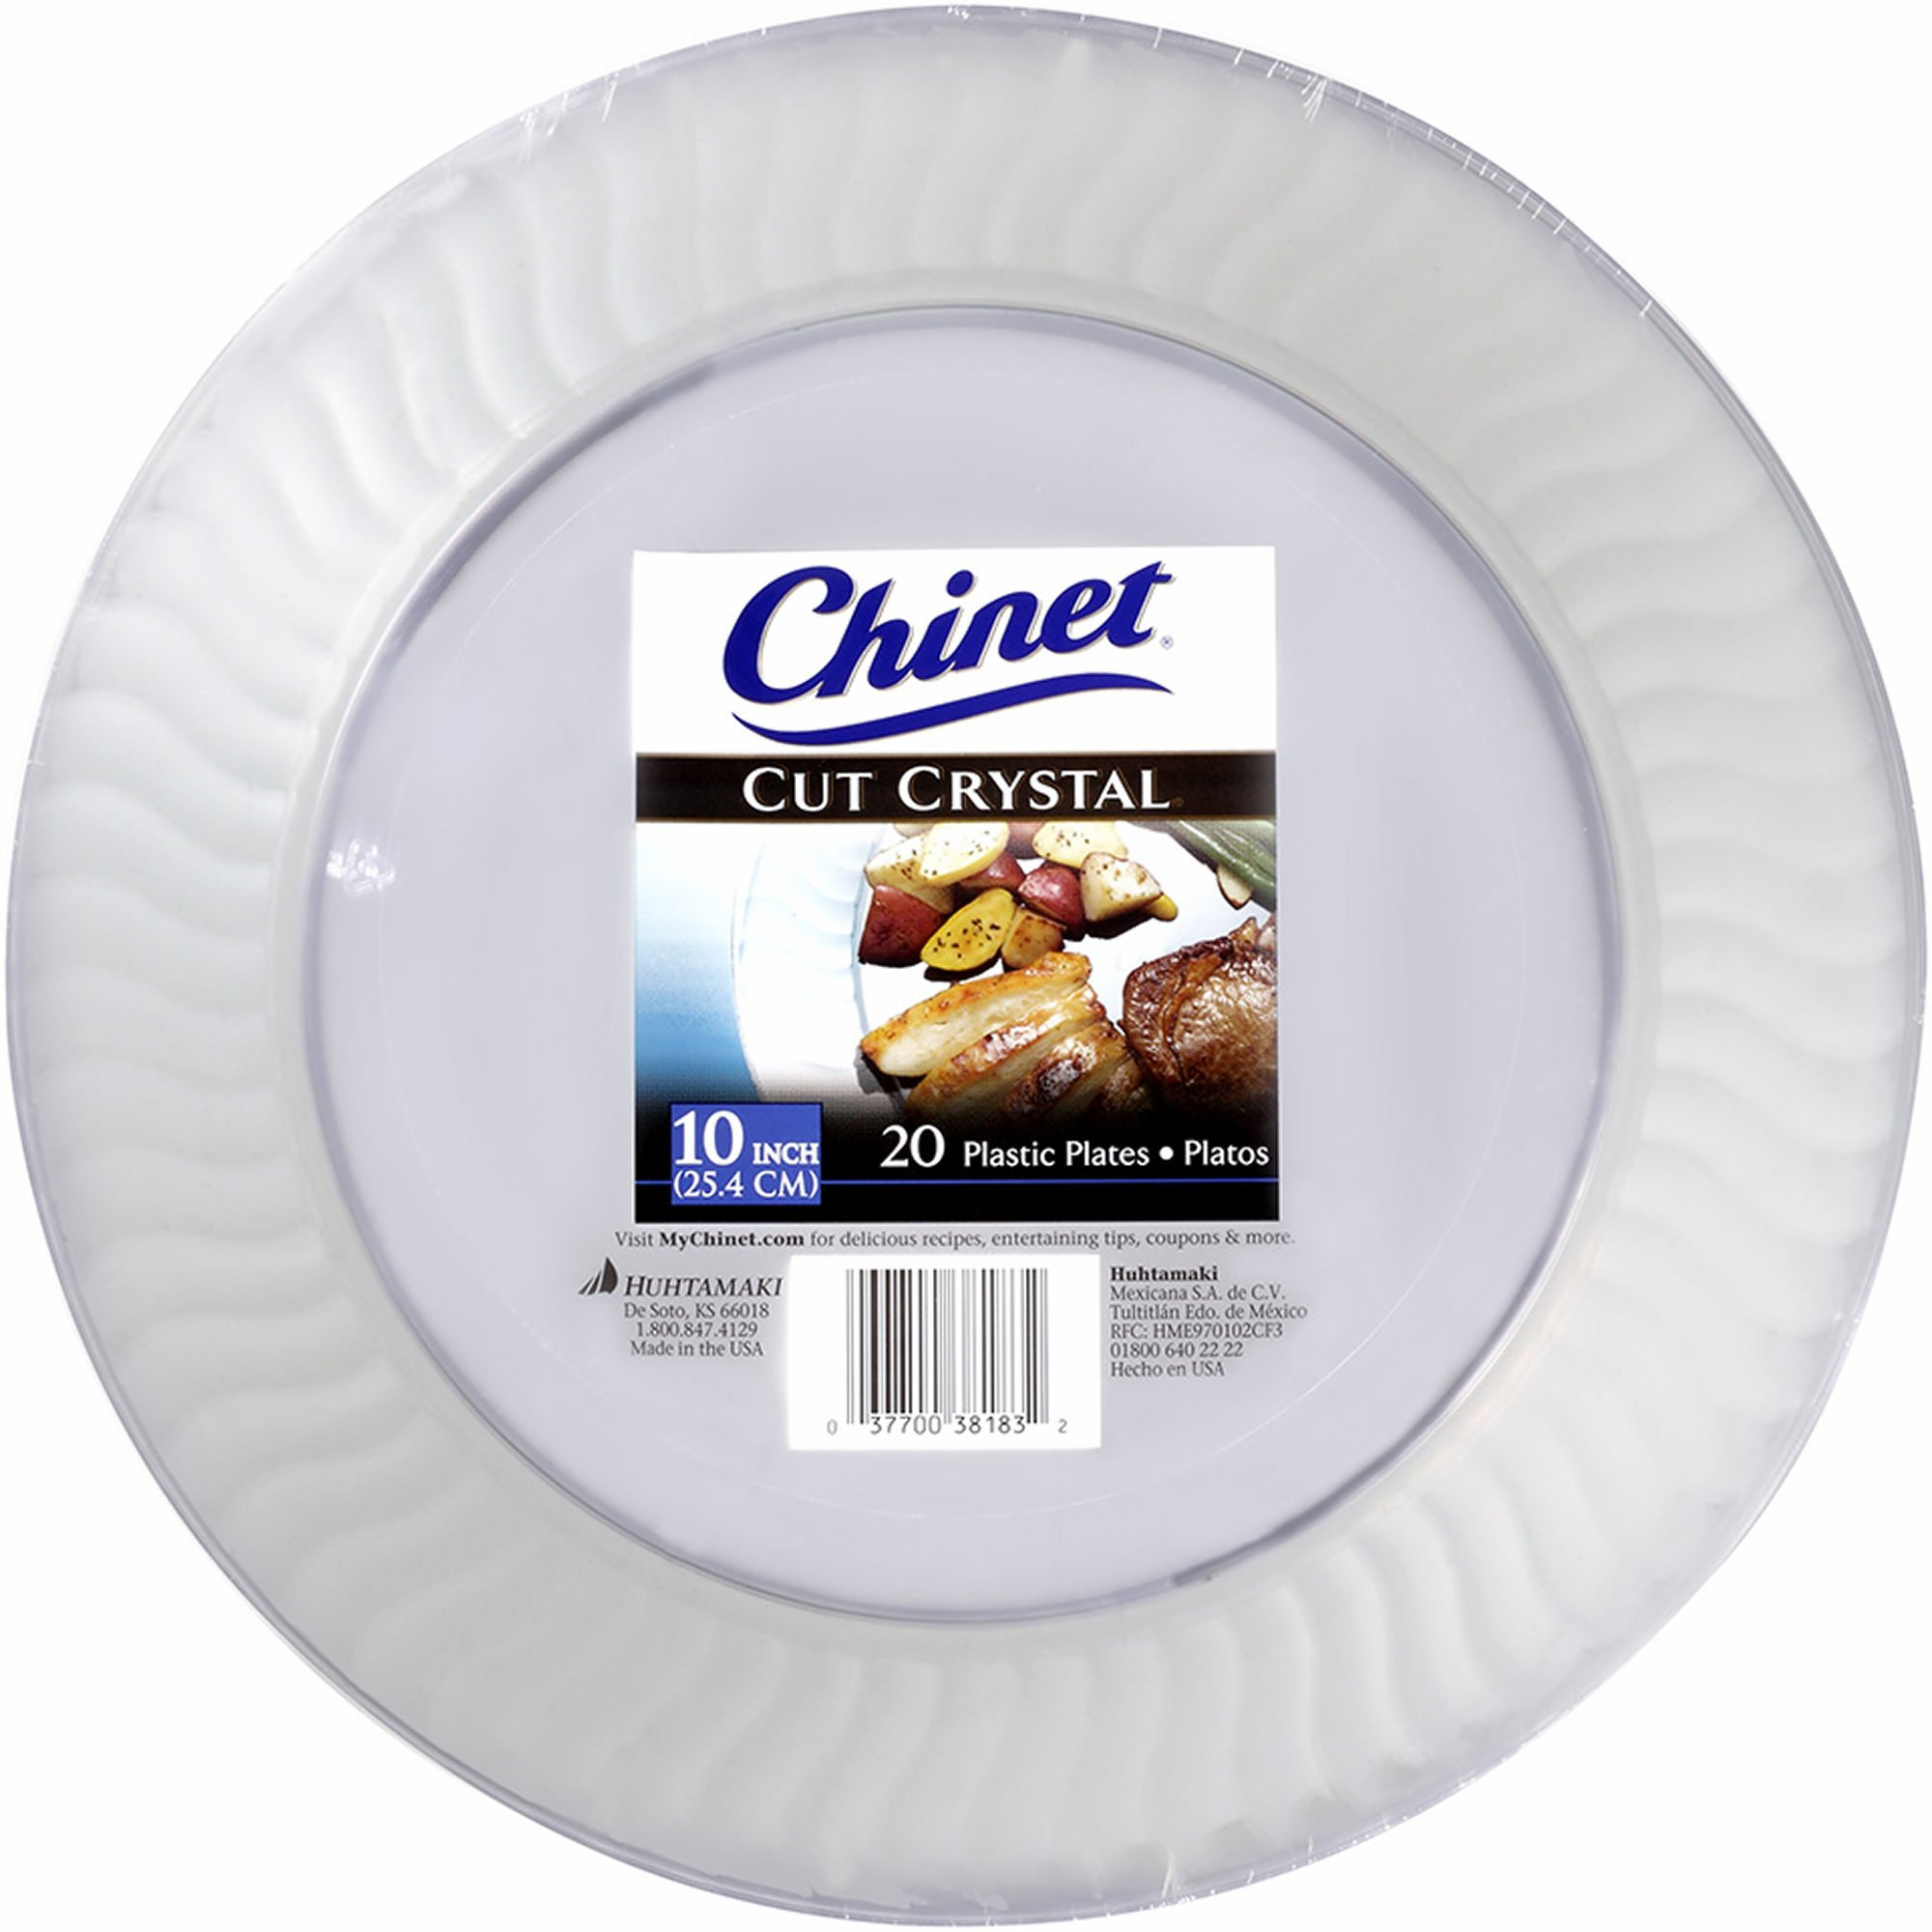 Chinet Cut Crystal Clear Plastic 10 inch Plates 20 ct.